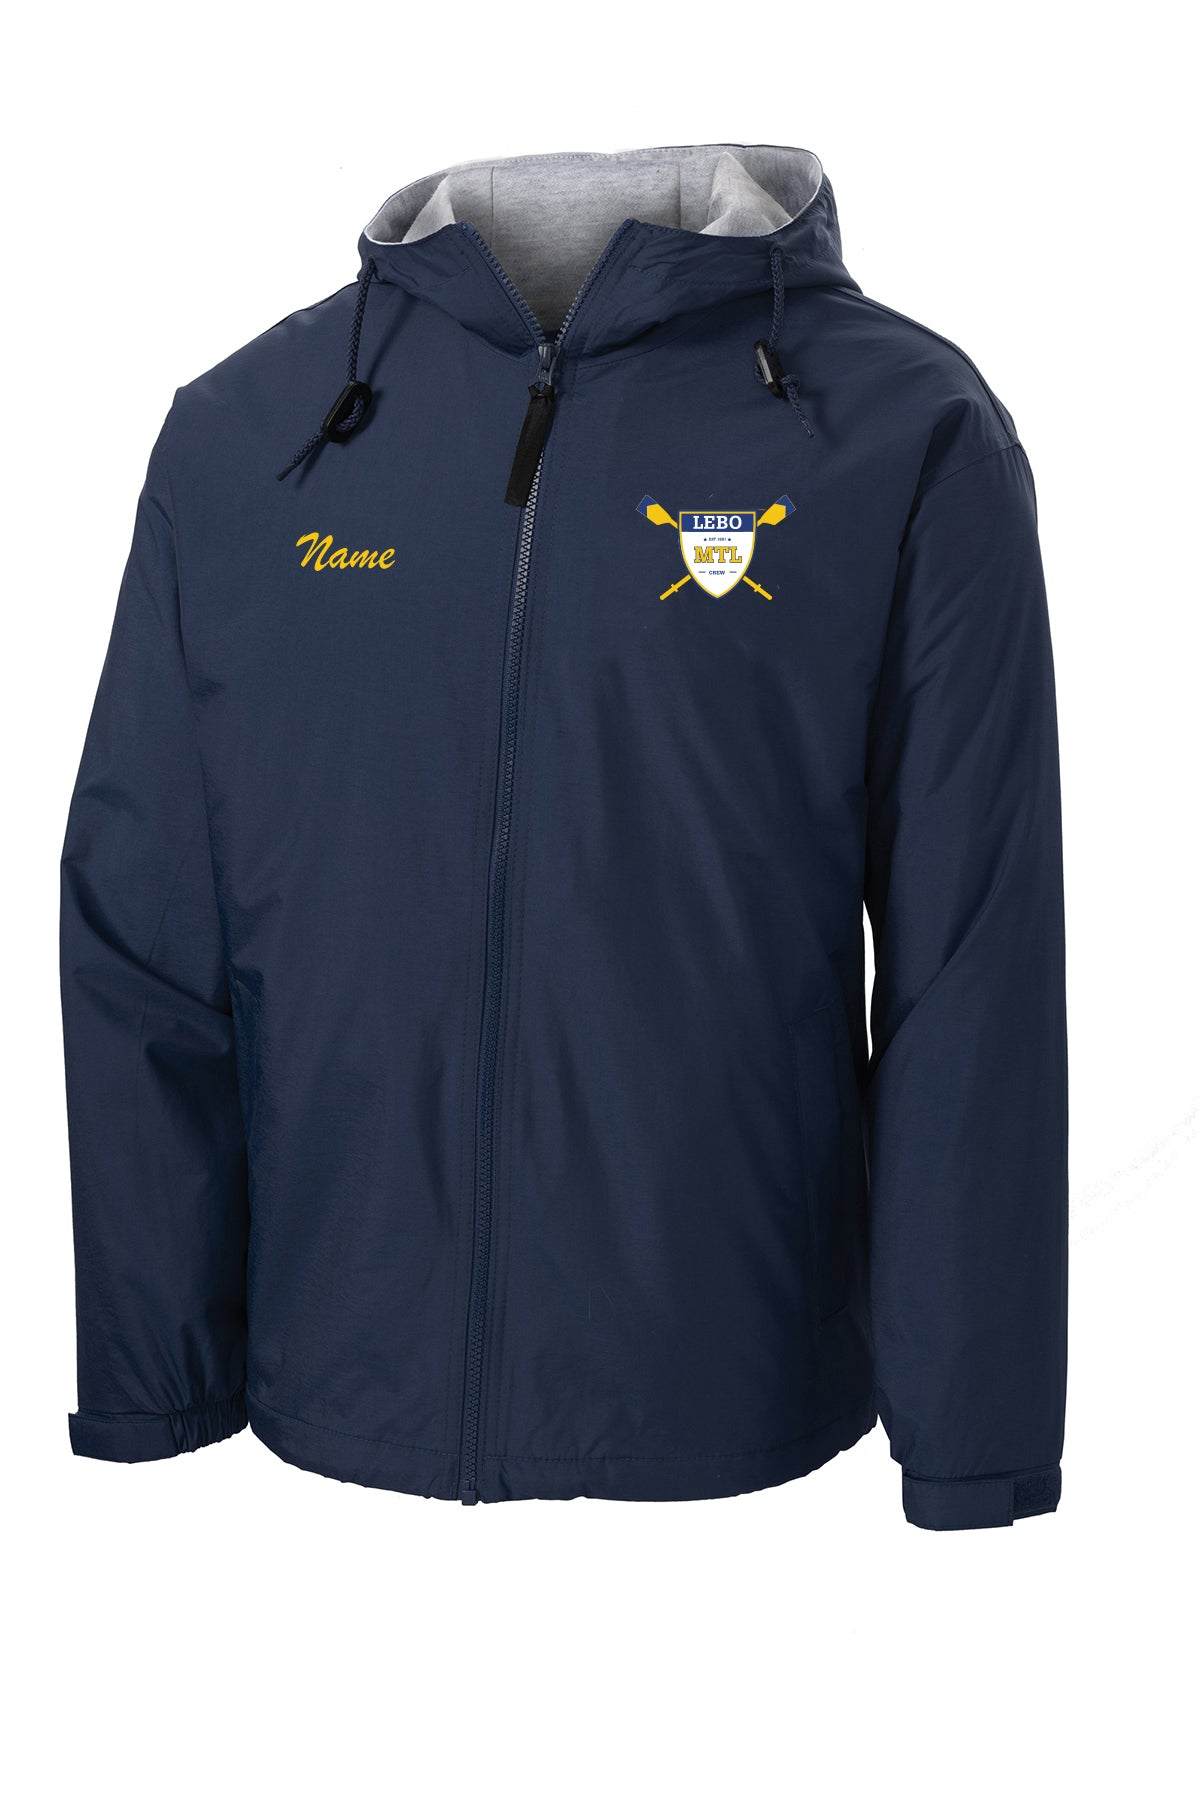 MT Lebanon Rowing Team Spectator Jacket